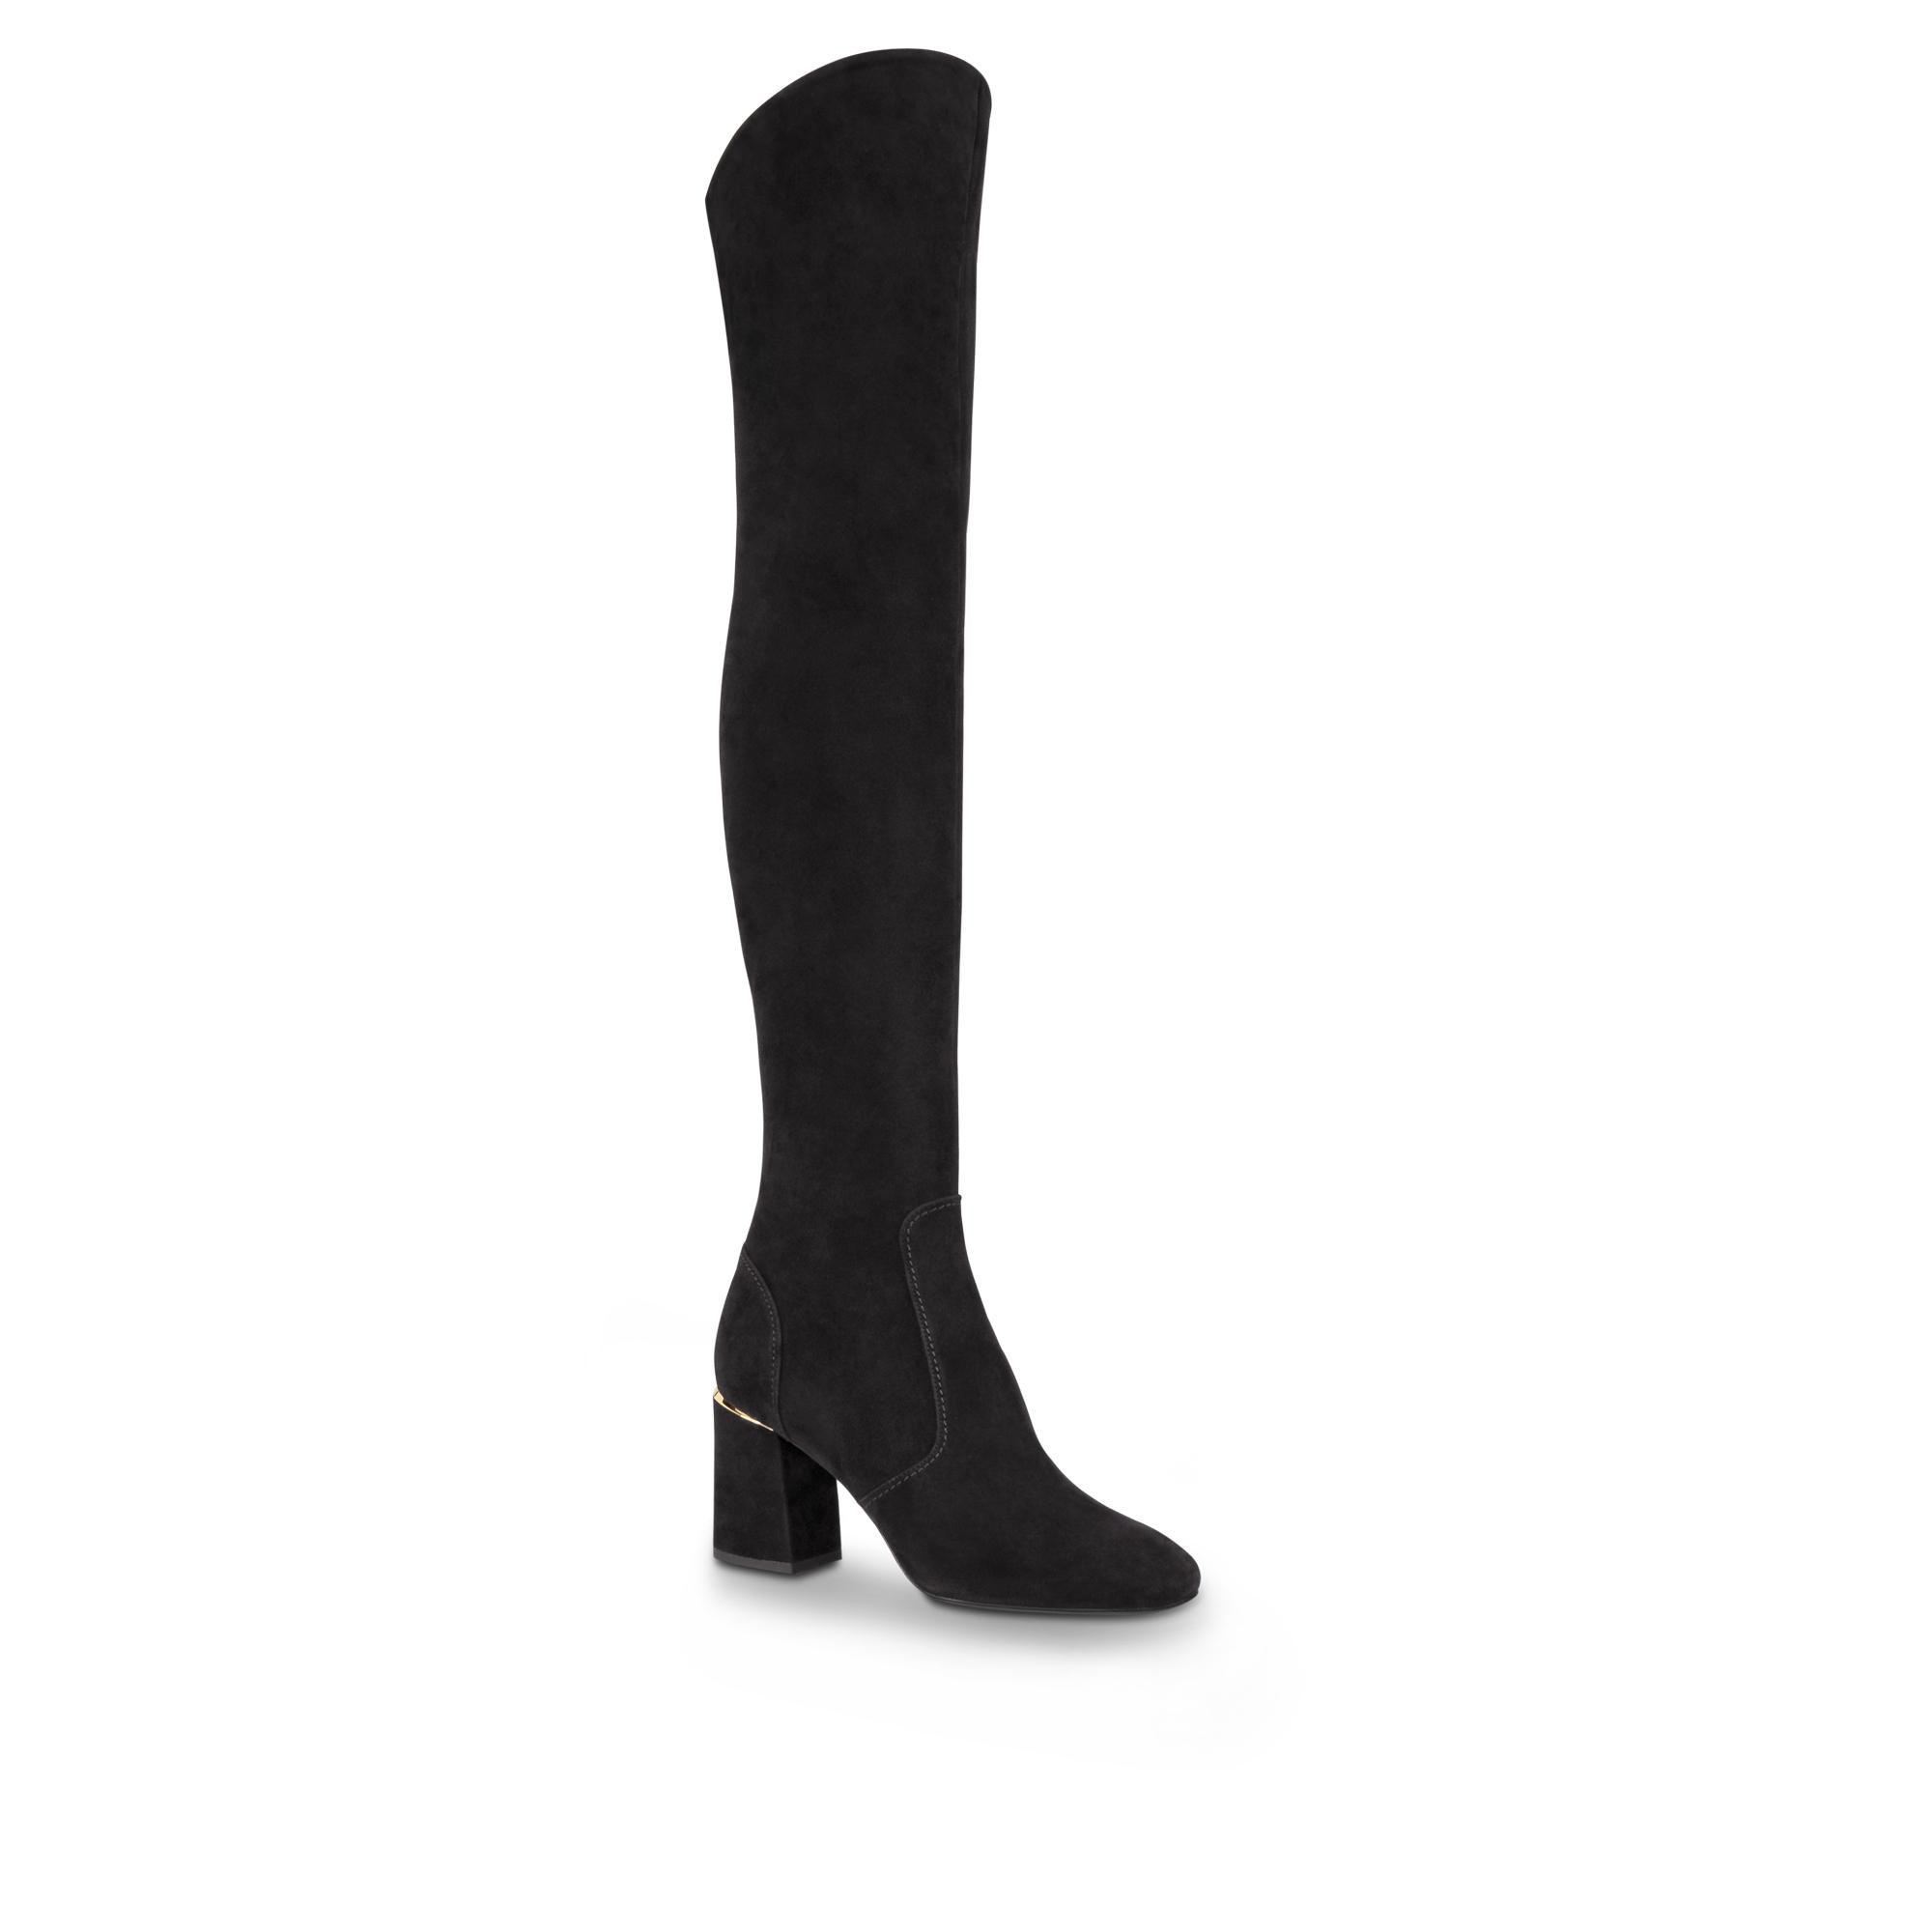 Skyline Thigh Boot from LOUIS VUITTON